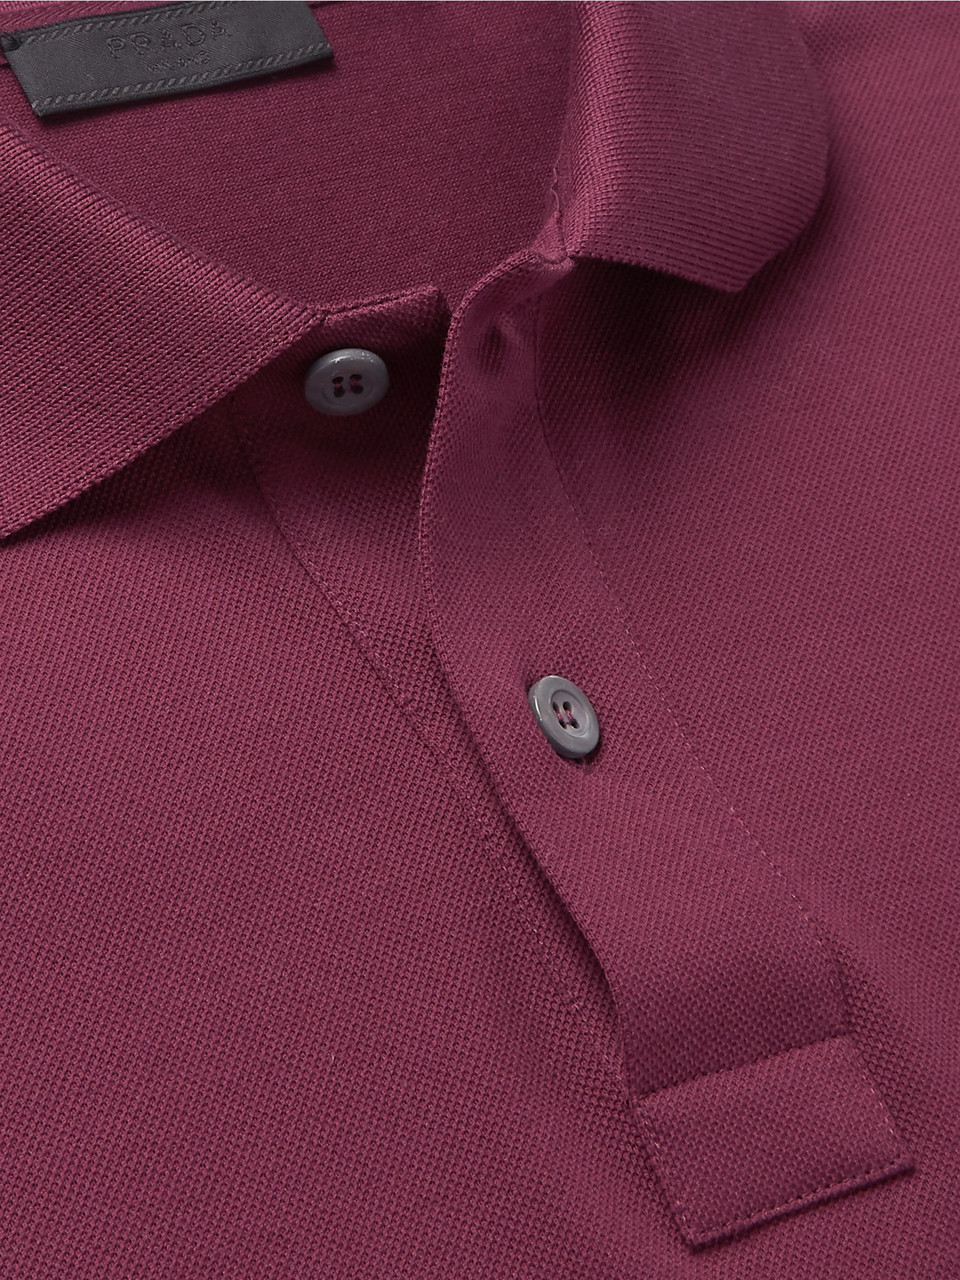 Prada Logo-Appliquéd Cotton-Piqué Polo Shirt